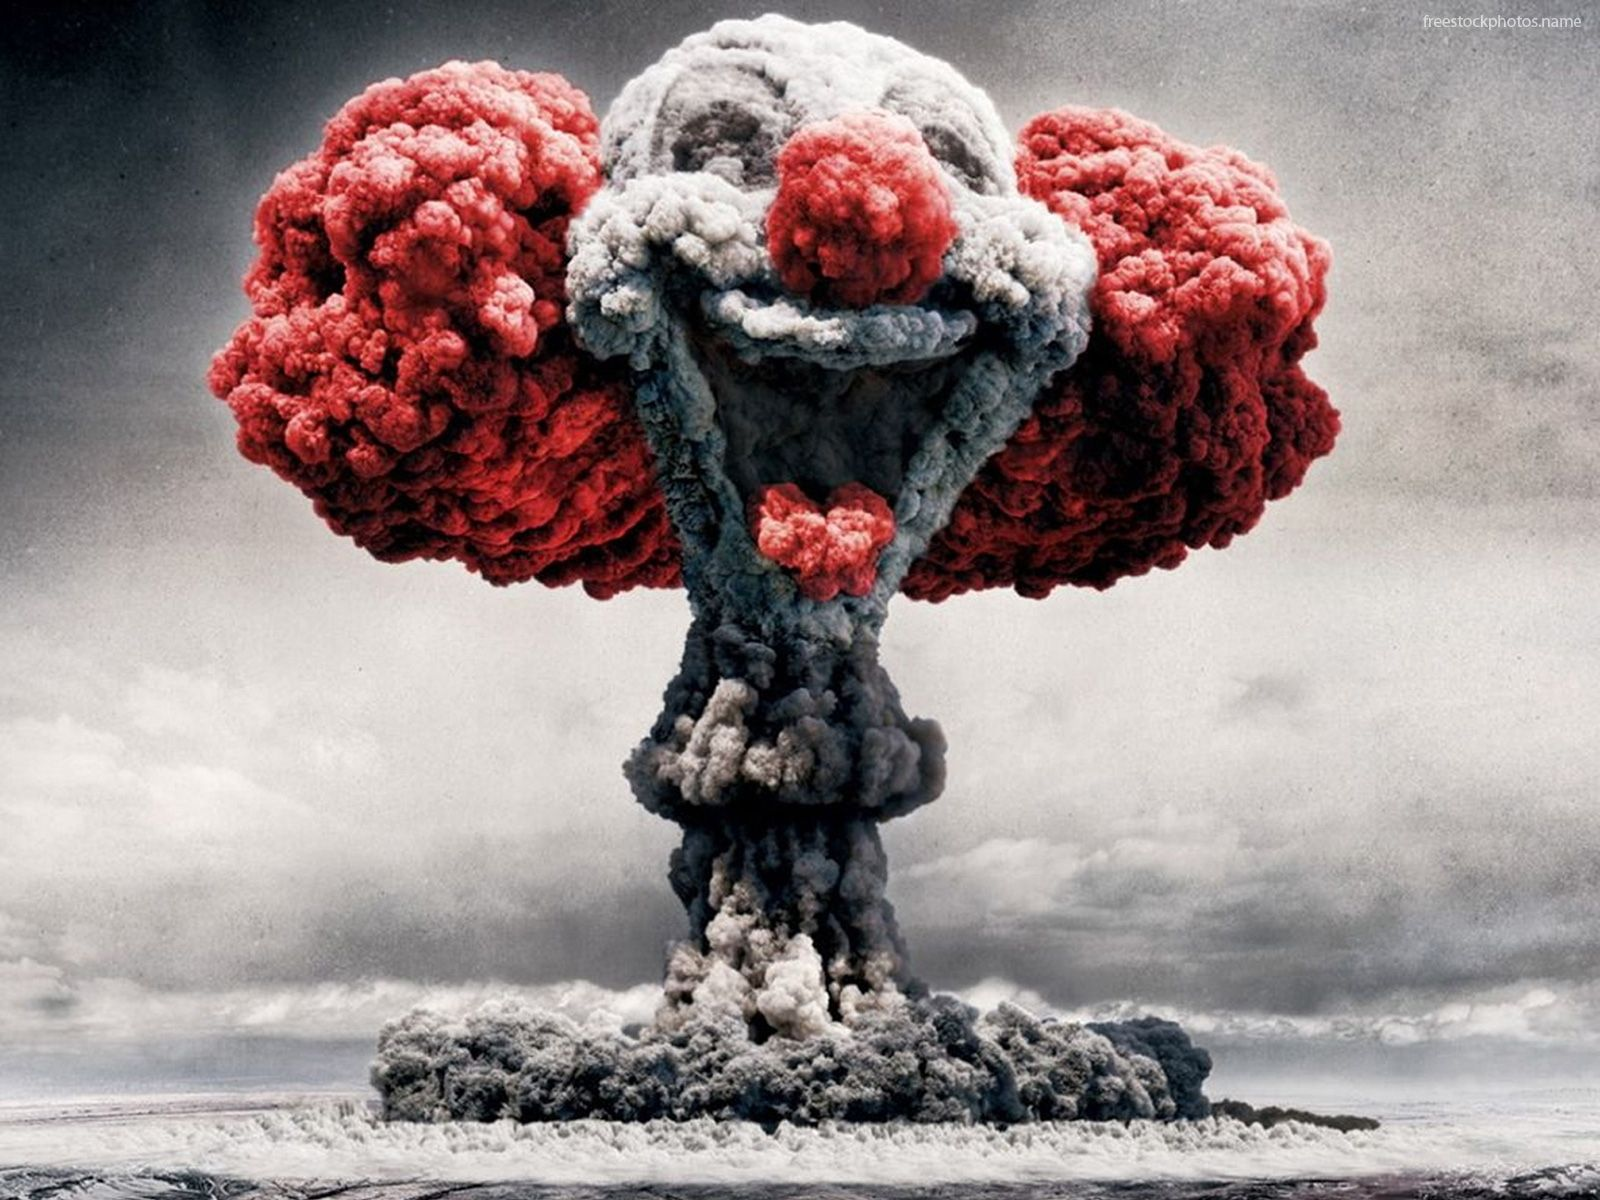 Download Stock Photos of atomic bomb clown images photography | Best ...